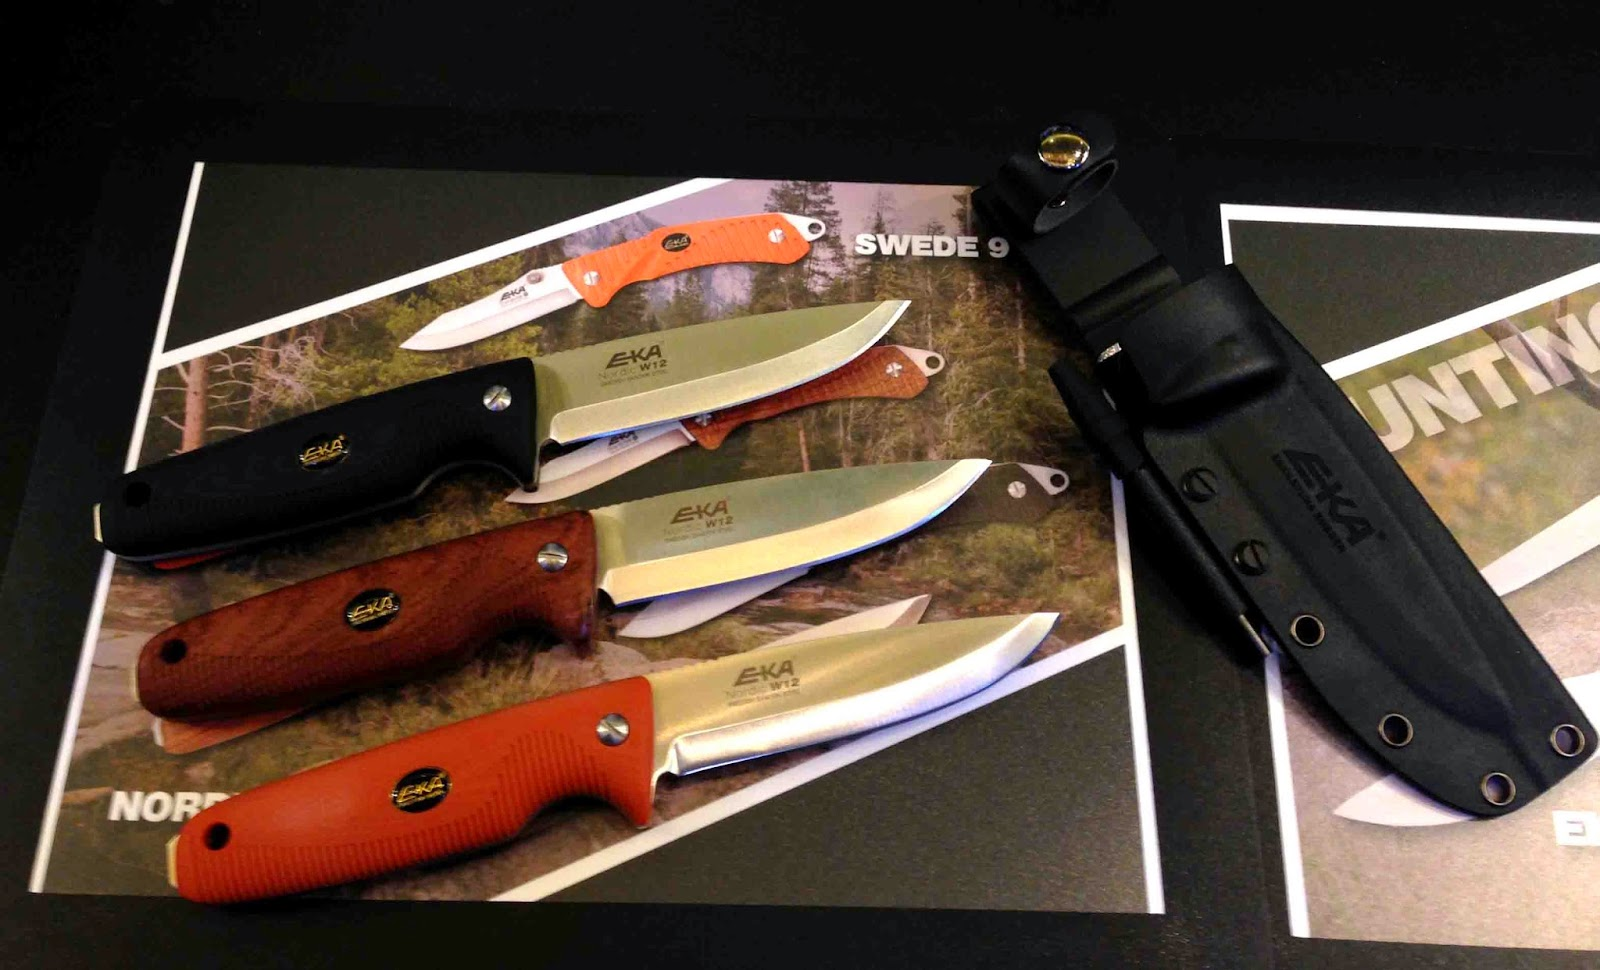 Rocky mountain bushcraft shot show 2014 first impression review - Although Eka Is A Newcomer To America They Have Been Making Knives In Sweden Since 1882 Their New Entry In The Us Survival Knife Market Is The Nordic W12